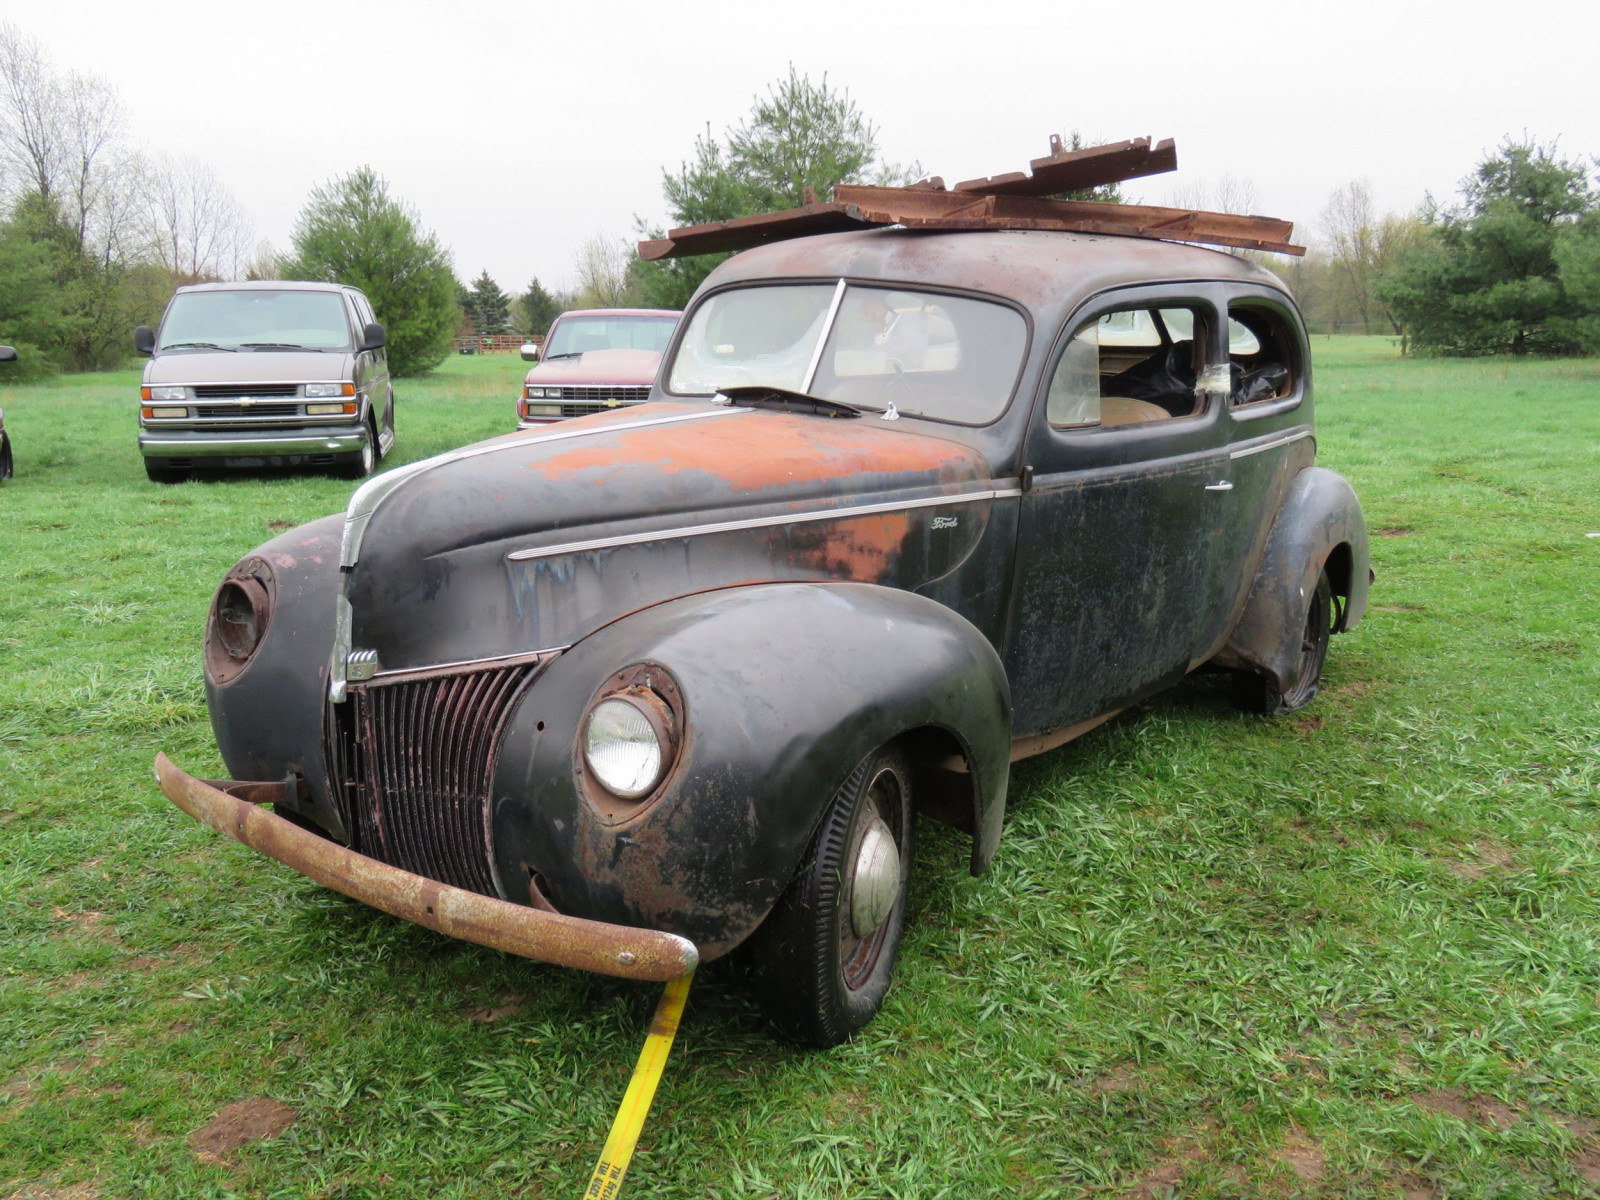 1940 Ford 2dr Sedan for Rod or Restore - Image 1